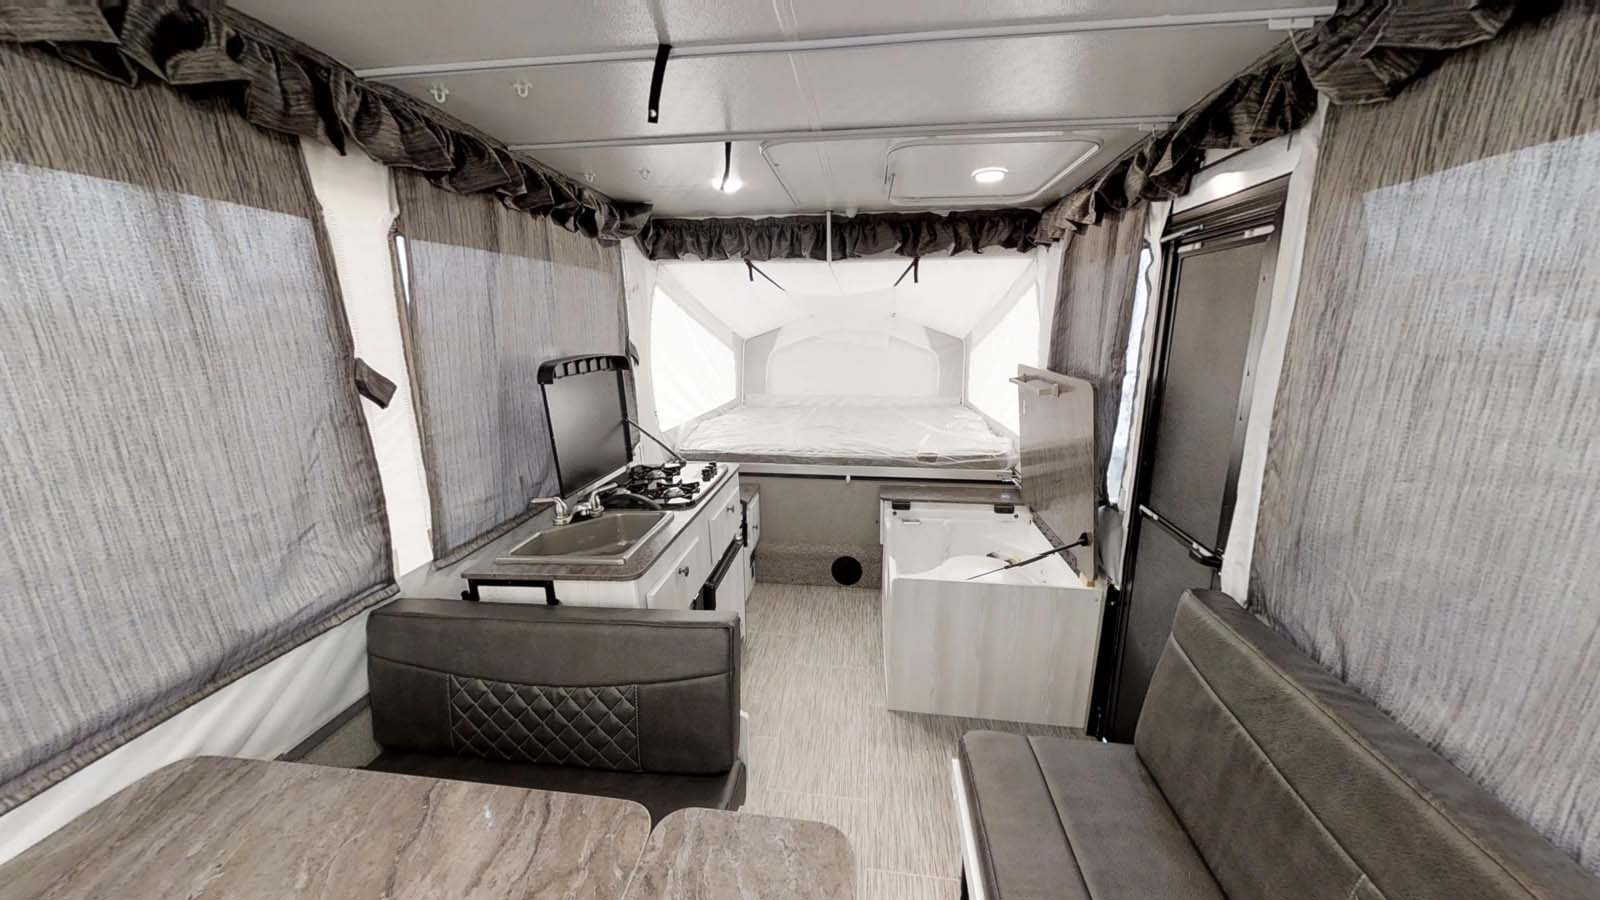 5 Best Pop Up Campers With Bathrooms In, Pop Up Tent Trailer With Bathroom